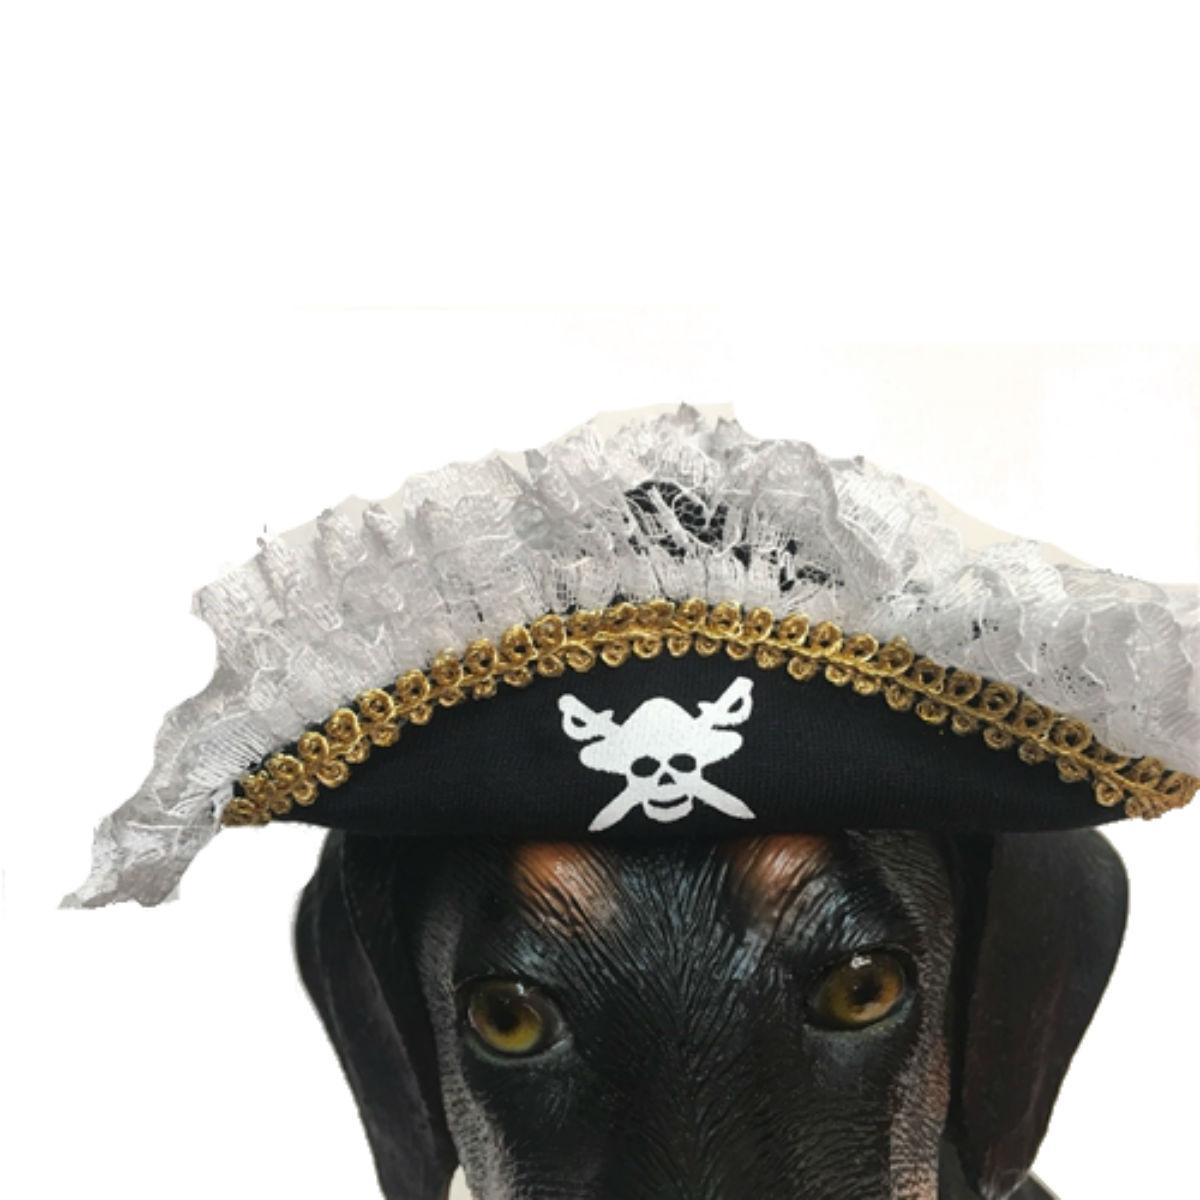 Scallywag Pirate Hat Costume